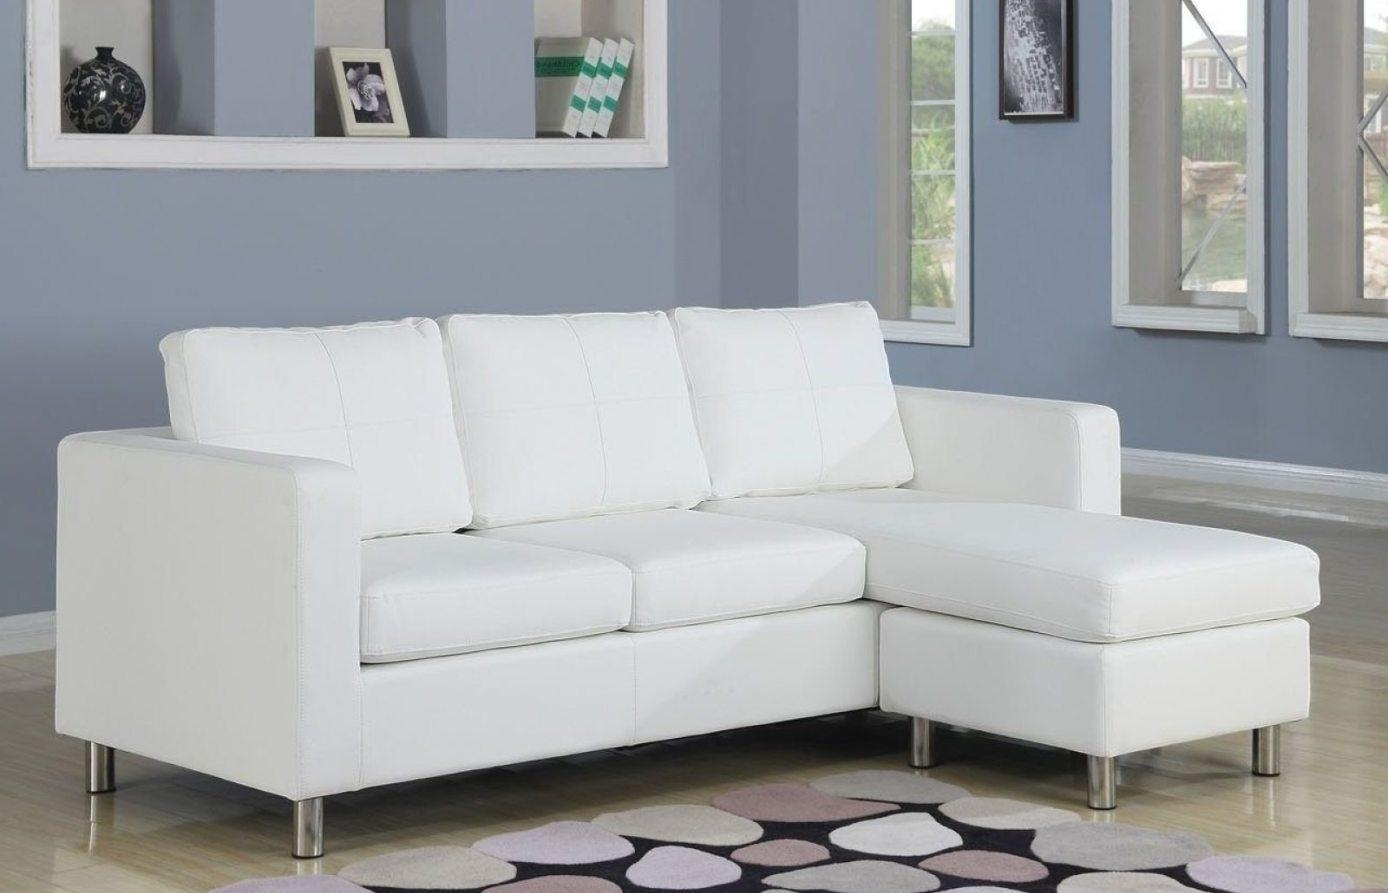 Winsome Sectional Sofa Beds For Small Spaces Tags : Sectional Within Sectional Small Space (Image 20 of 20)